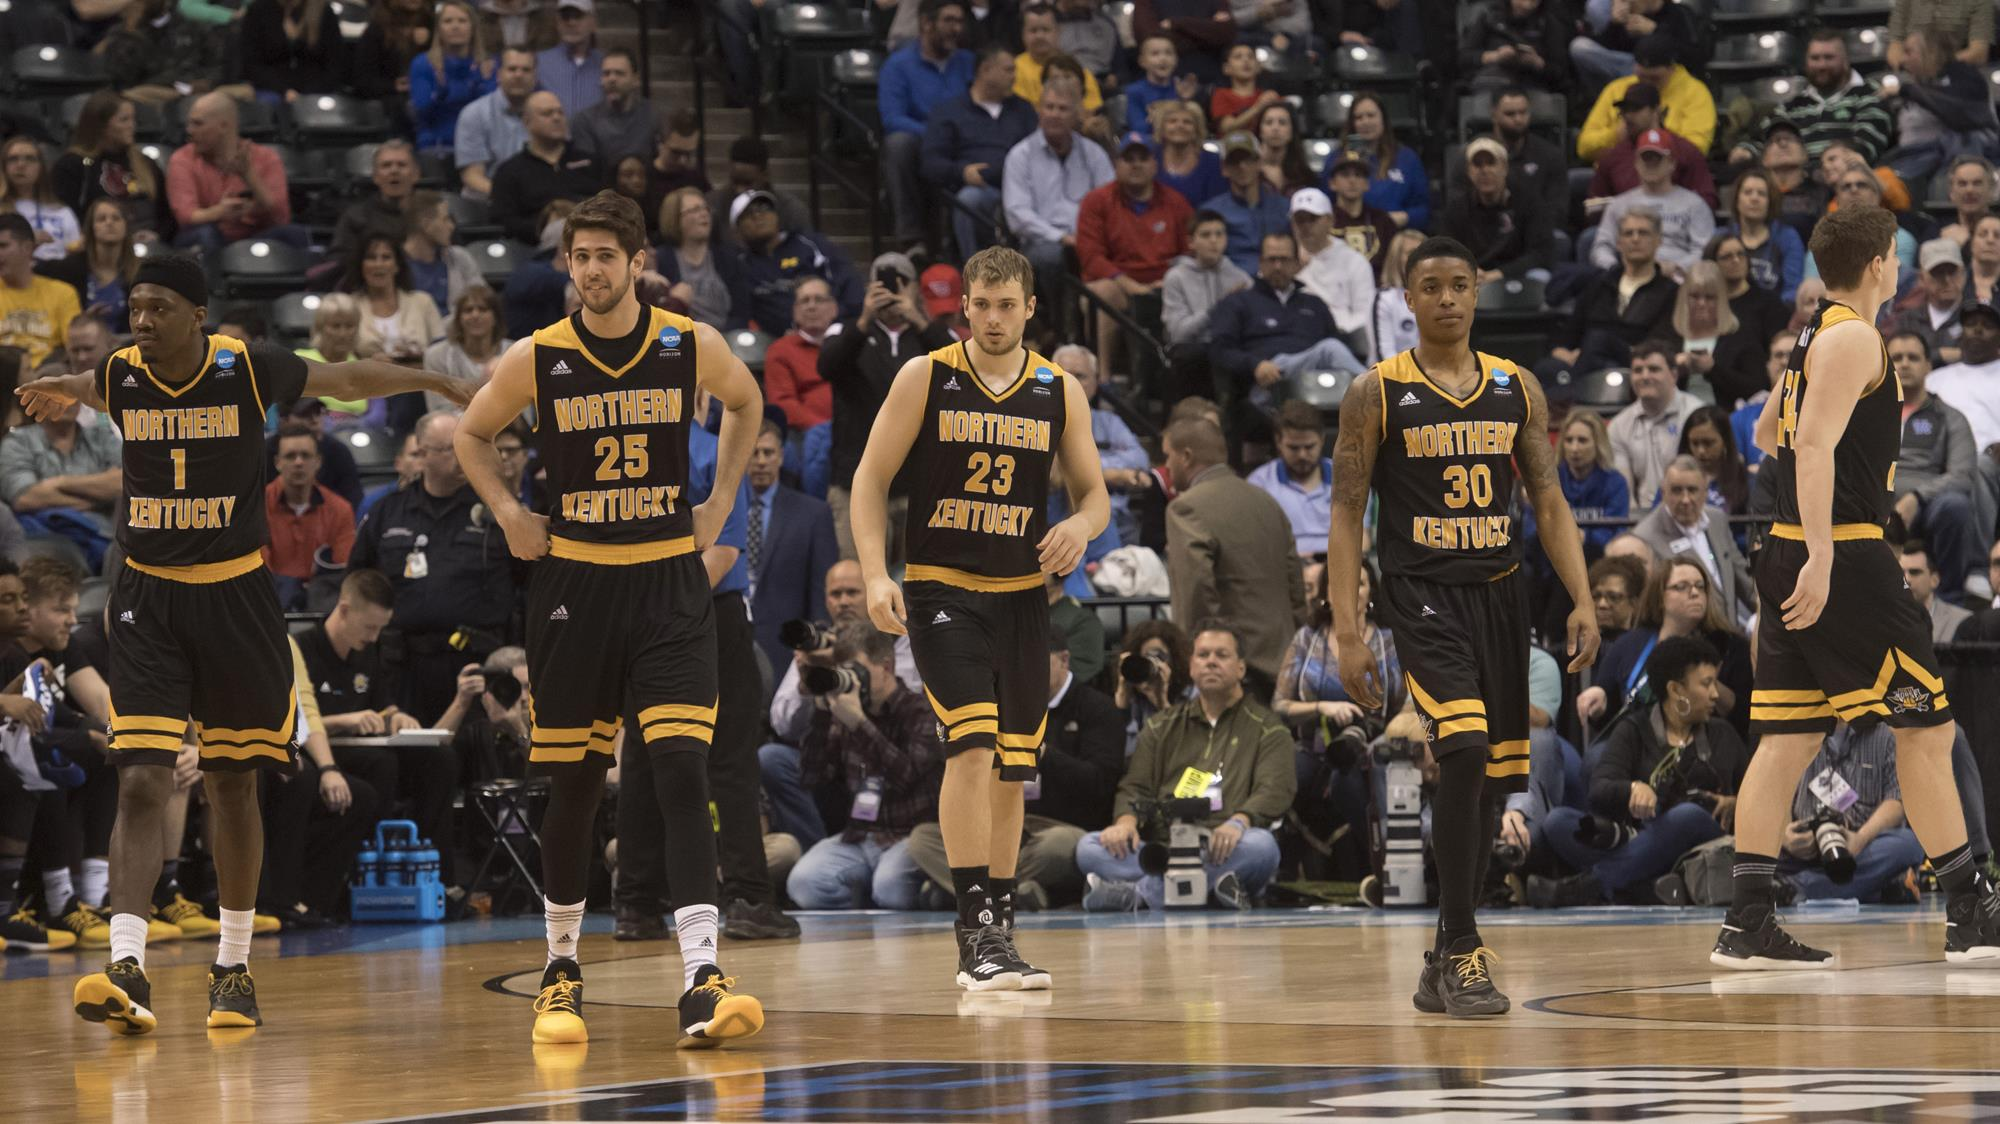 low priced 32e12 b832d 2016-17 @NKUNorseMBB Year-In-Review: Norse Overview - NKU ...